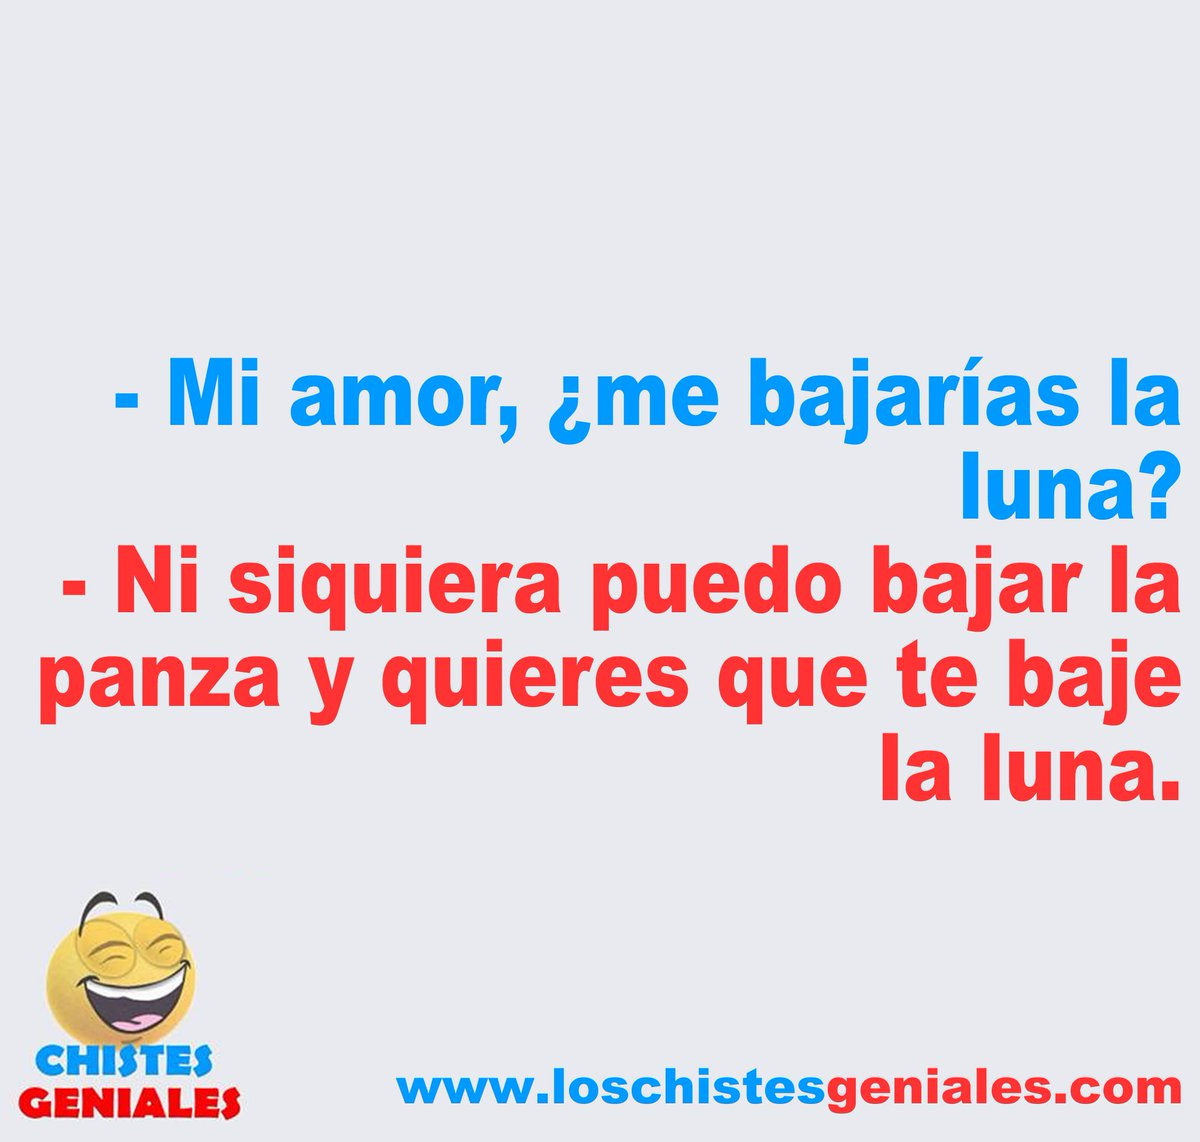 Chistes Geniales On Twitter Chiste Chistes Chiste Humor